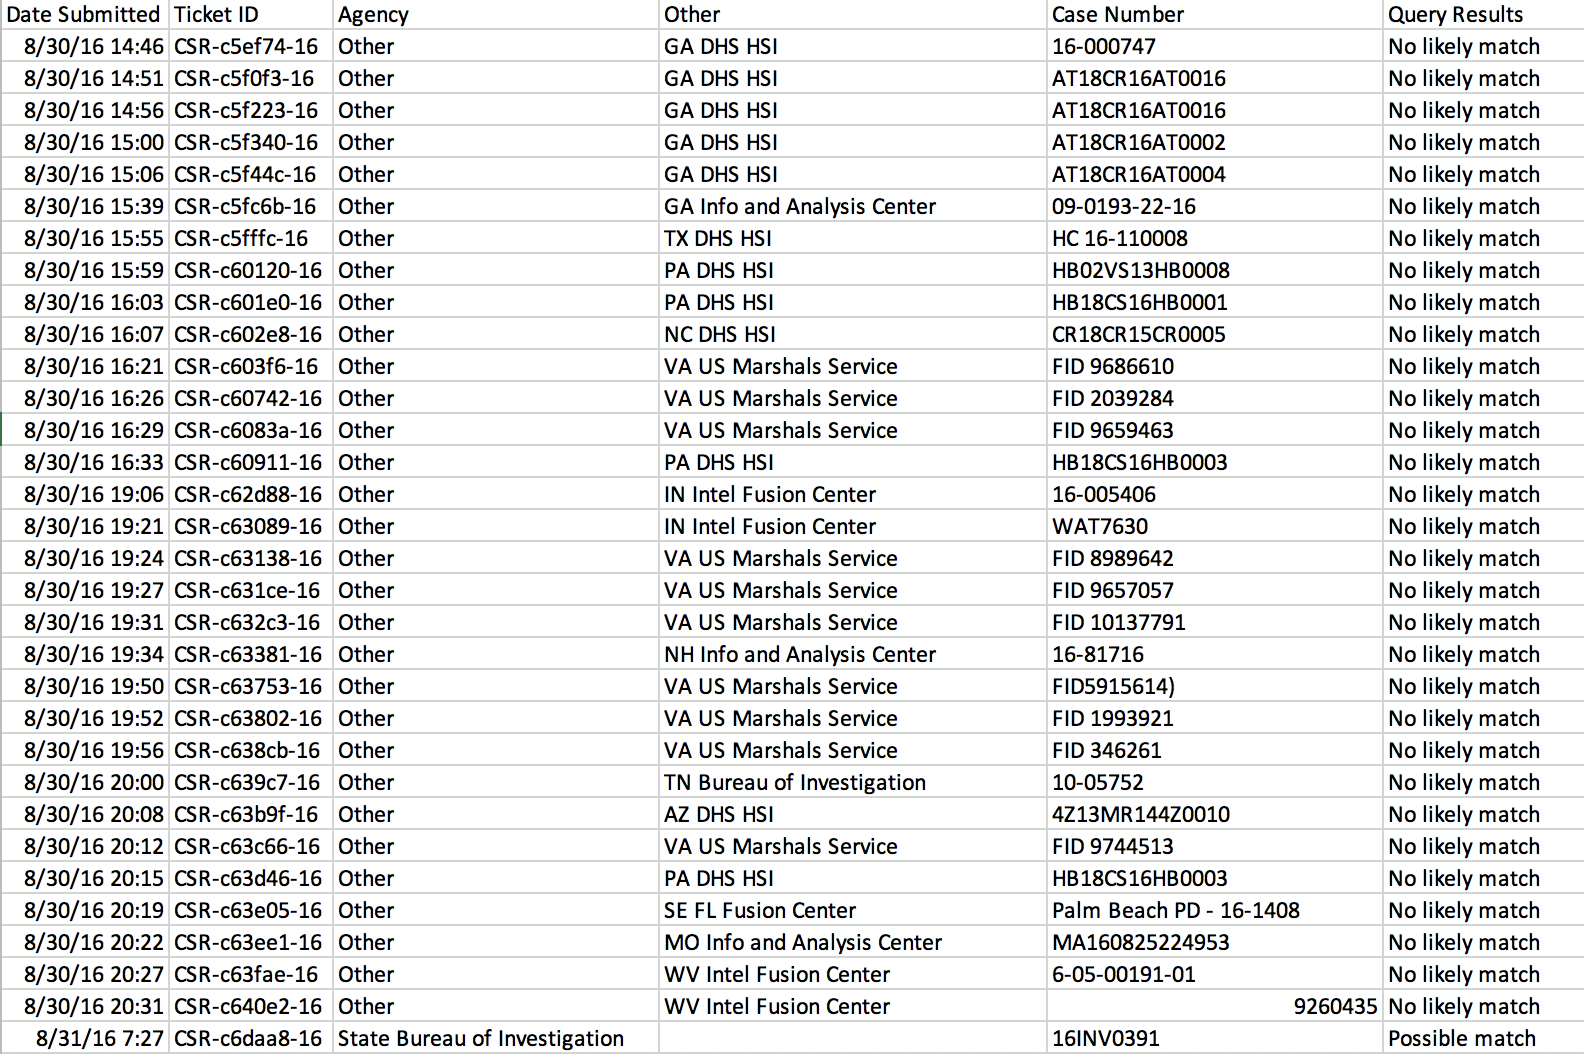 A screenshot of a spreadsheet of facial recognition requests to the Utah Statewide Information & Analysis Center, with columns for Date Submitted, Ticket ID, Agency, Other, Case Number, and Query Results